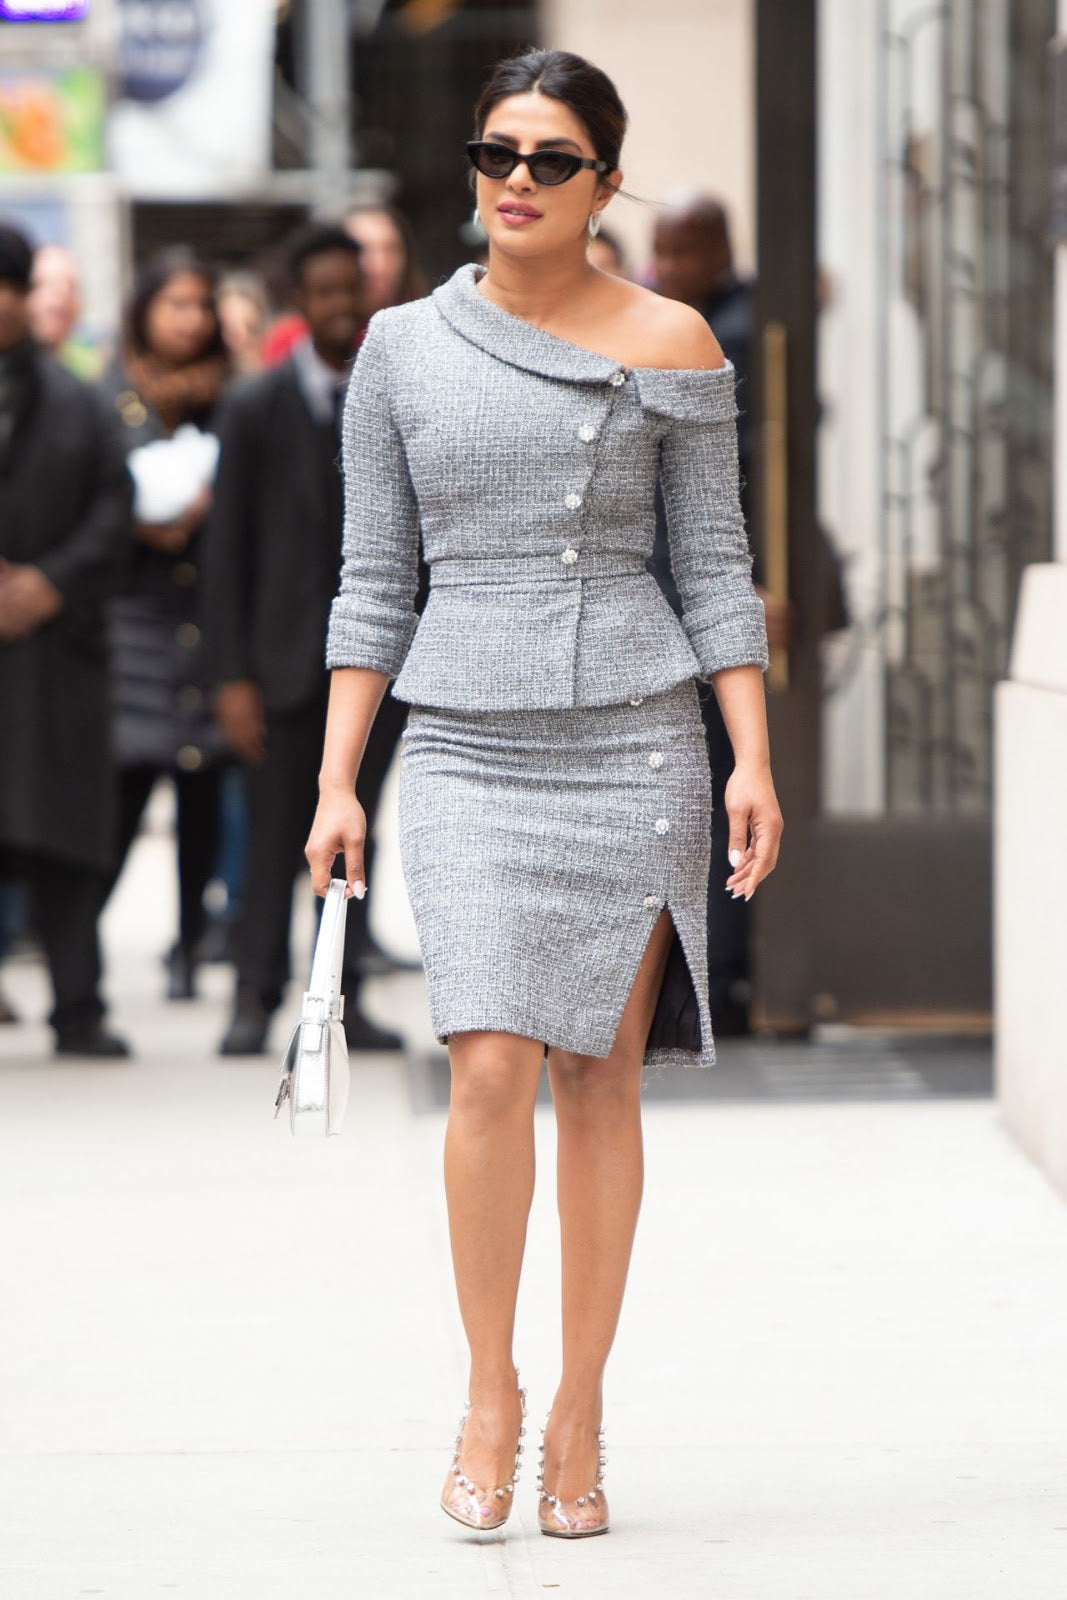 Priyanka Chopra's Outfit is the Perfect Mix of Street Style & Classy